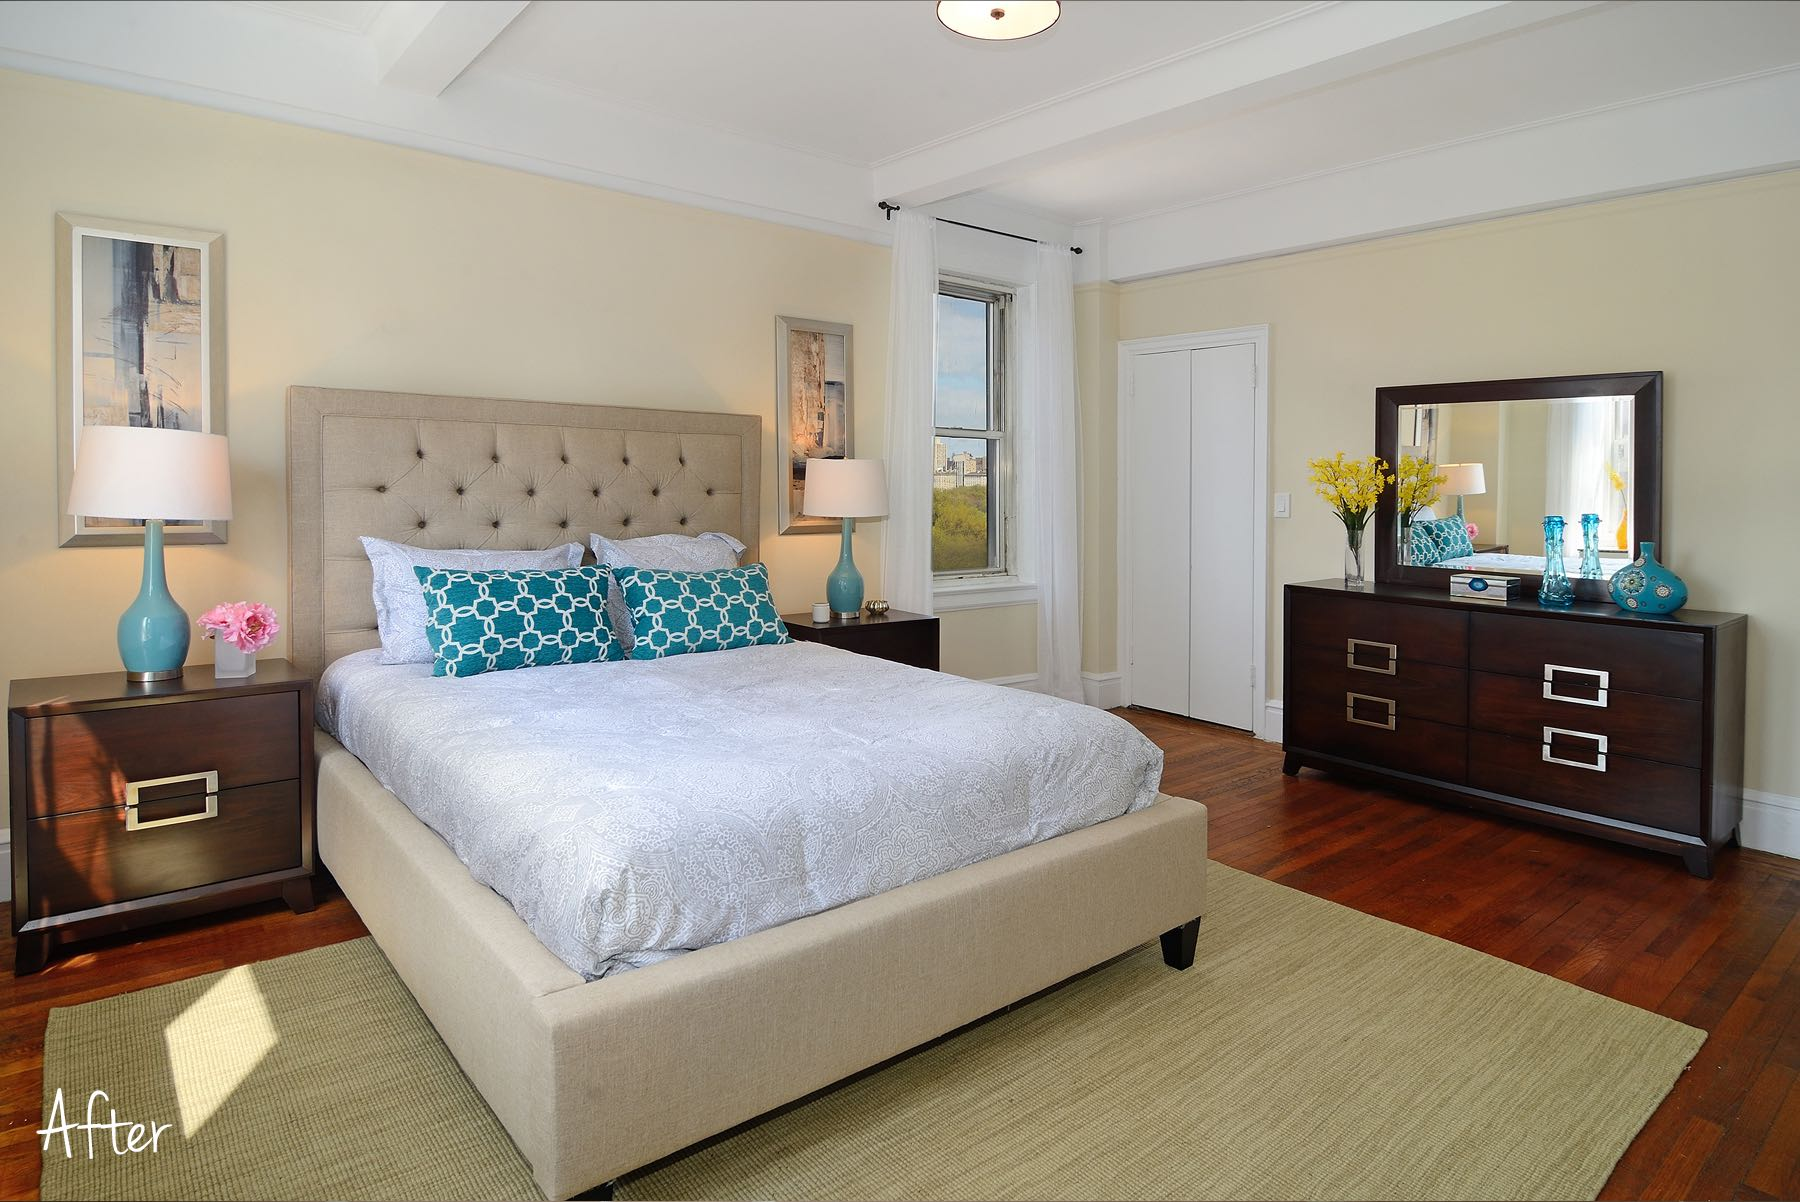 The Master Bedroom feels large and airy.